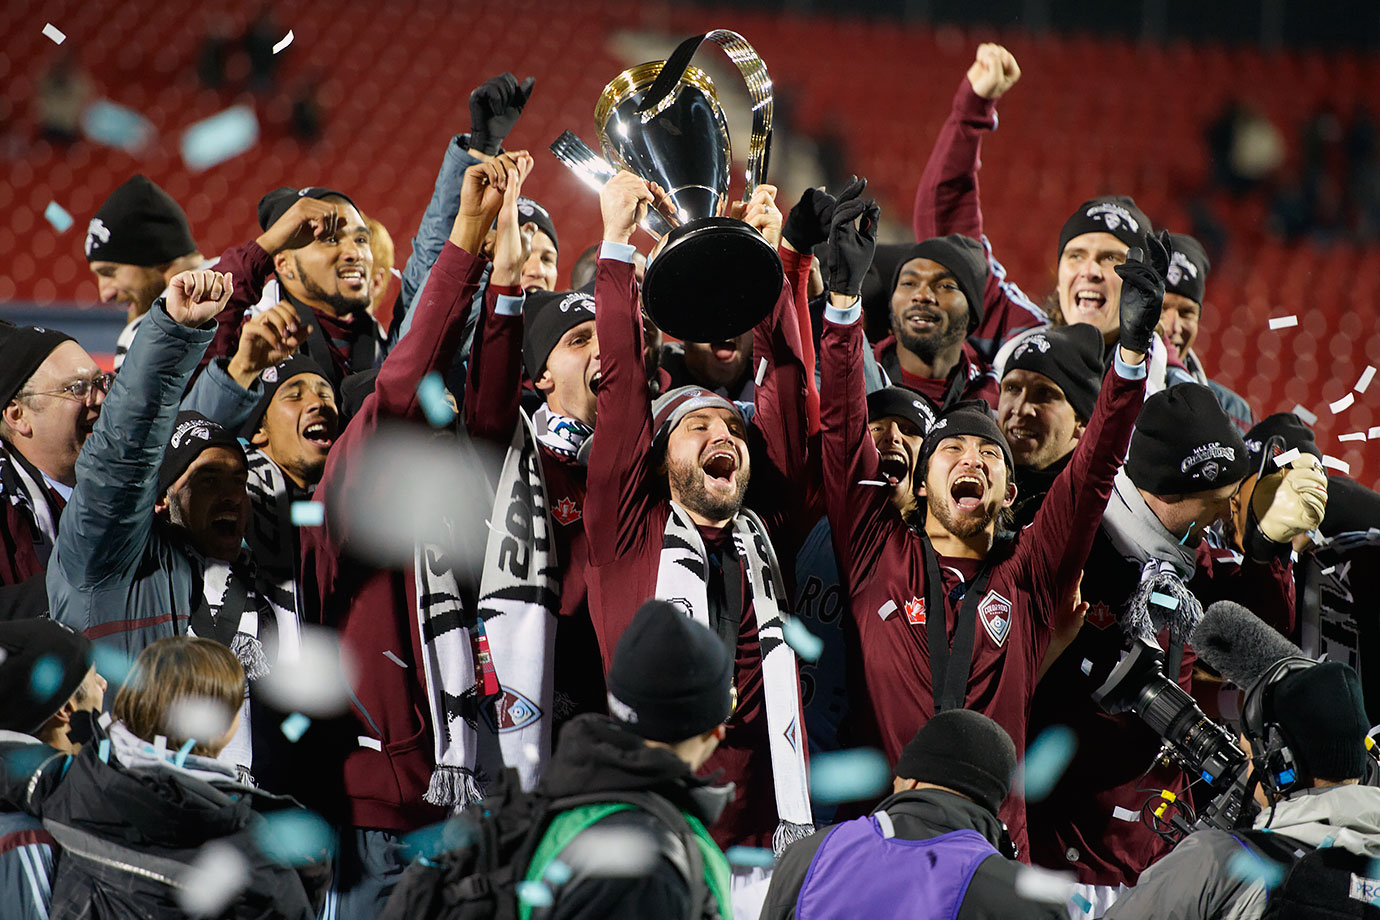 <p>2010 — Colorado Rapids (beat FC Dallas 2-1 in extra time)</p>